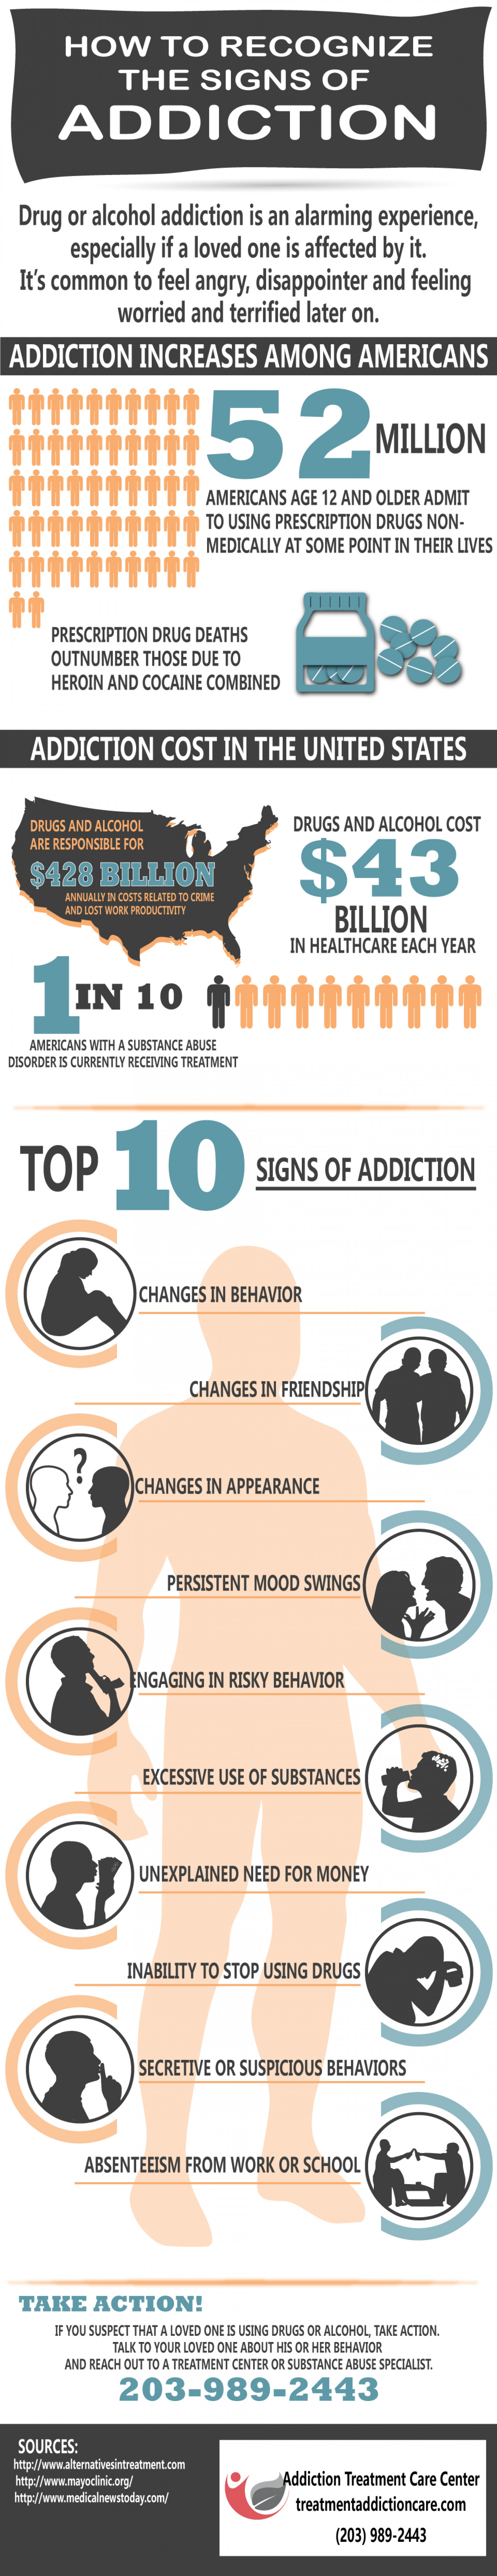 Signs of Addiction Infographic | Addiction Treatment Care Center Infographic